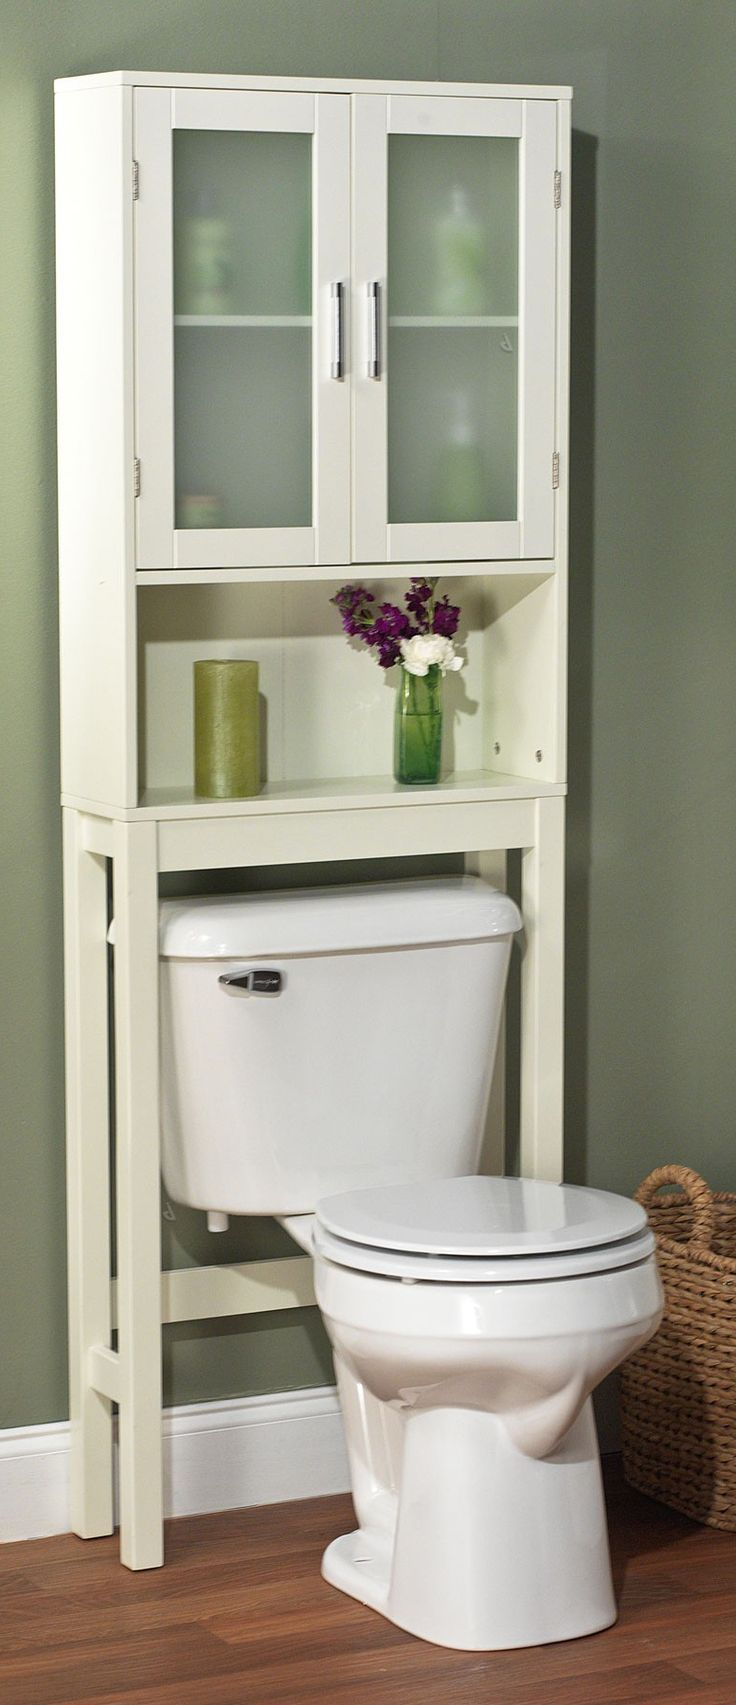 83 best Pedestal Sink Storage Solutions images on ... on Small Apartment Bathroom Storage Ideas  id=85333